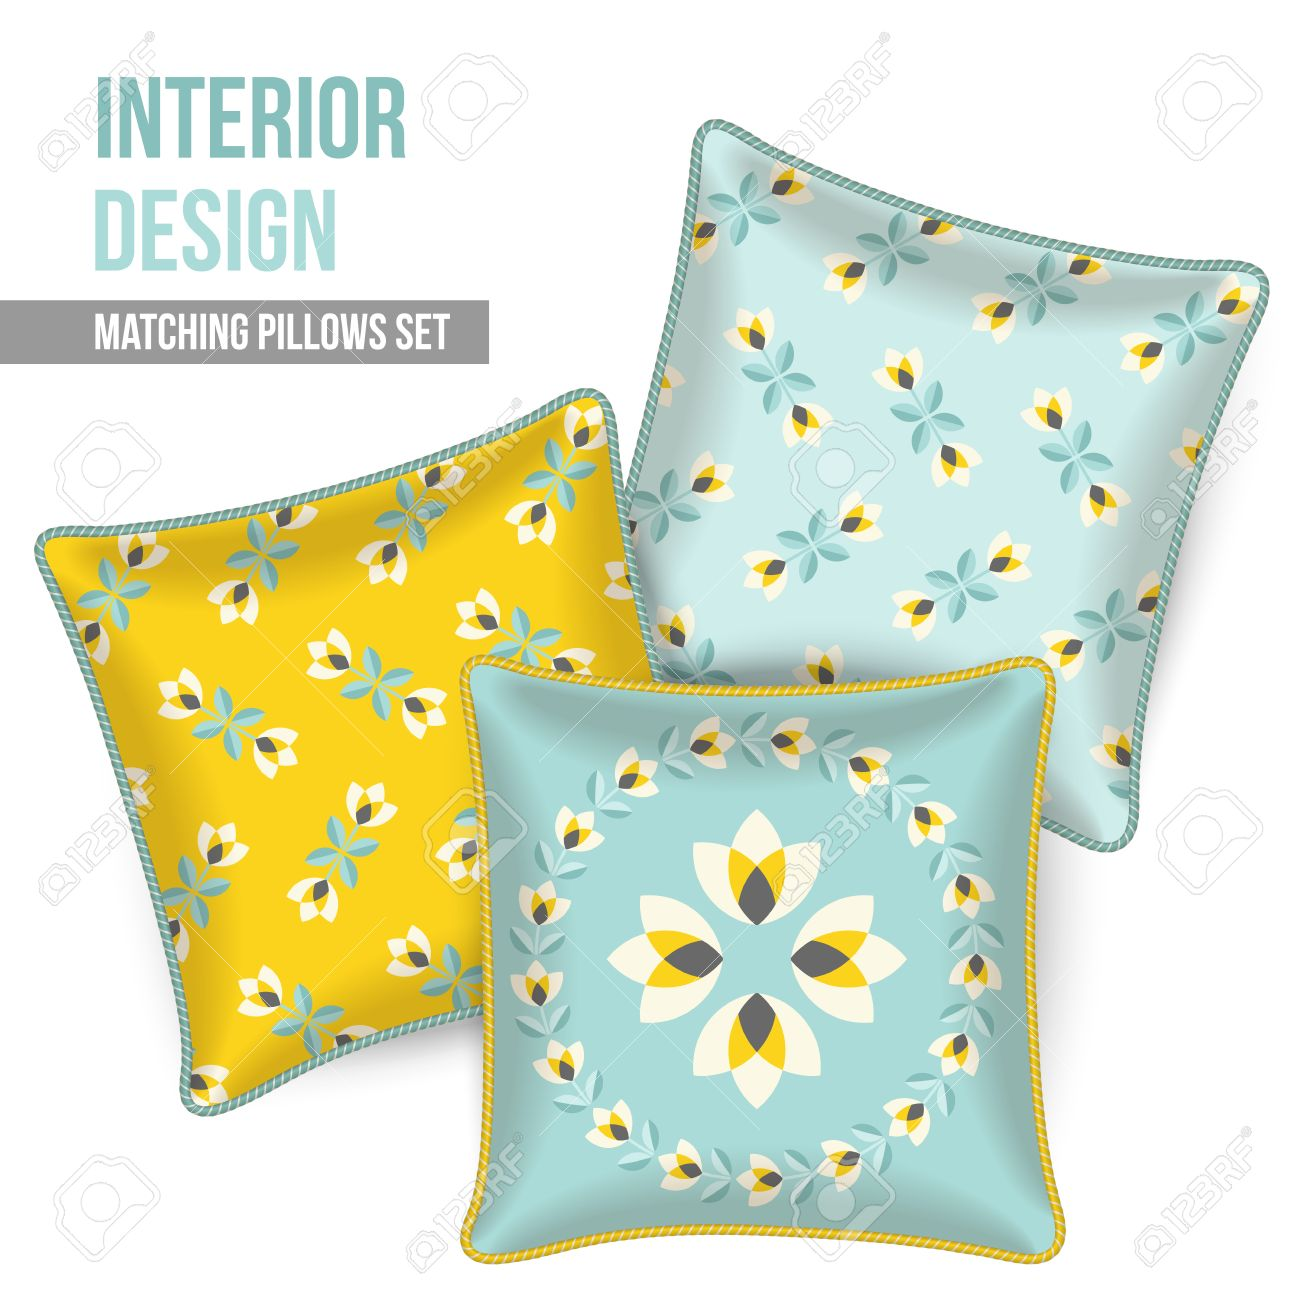 cushions throw pillow turquoise ideas yellow trend decor awesome grey navy of orange pillows and red decorative imgid blue